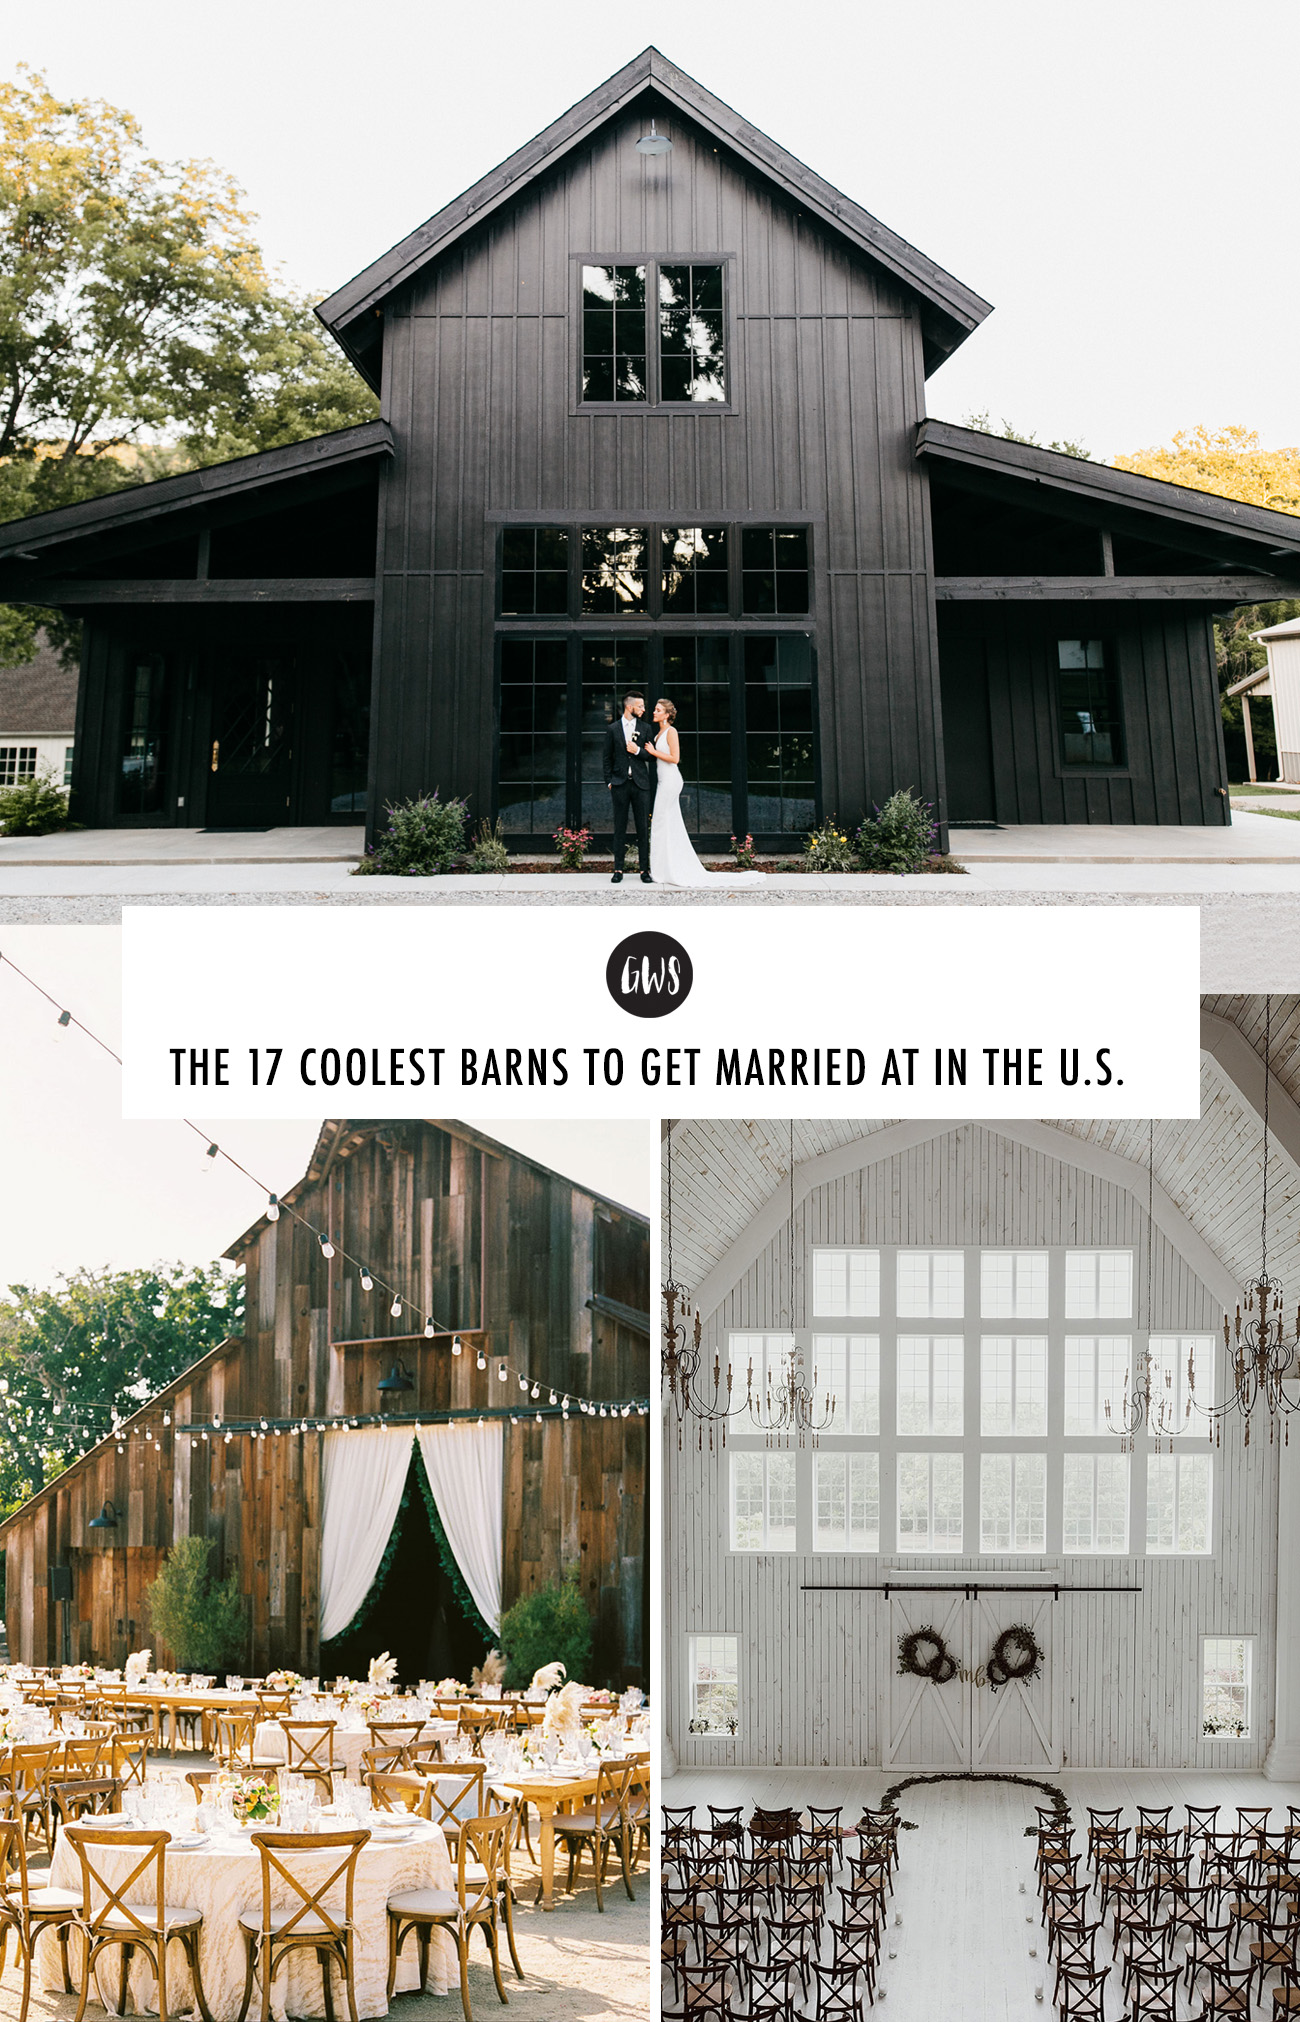 Coolest Barns to Get Married at in the US